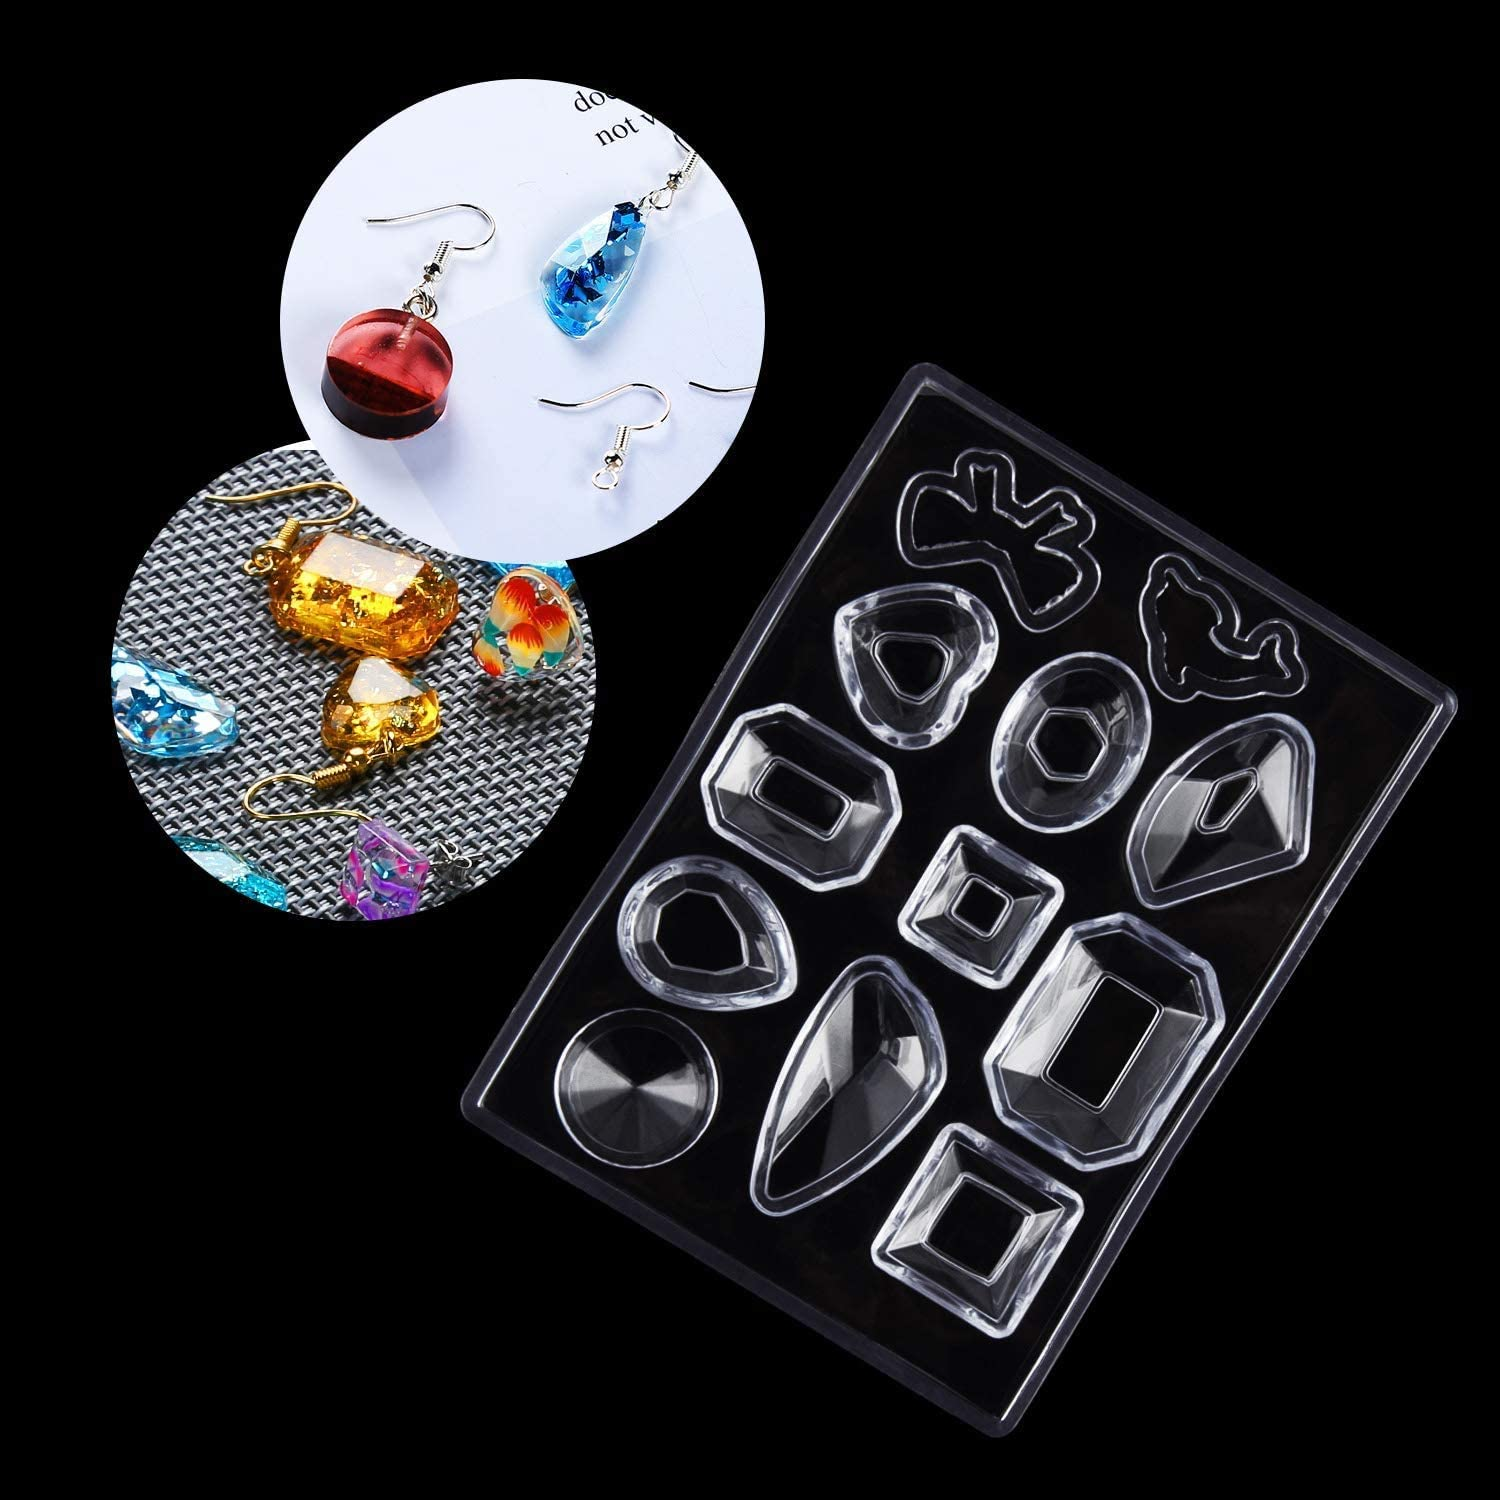 Bracelet Molds and Necklace Molds Kits ZHIHU 249 Pcs Silicone Resin Casting Molds for Jewelry Making set ,Resin Jewelry Molds Epoxy Resin Earring Molds Pendant Molds